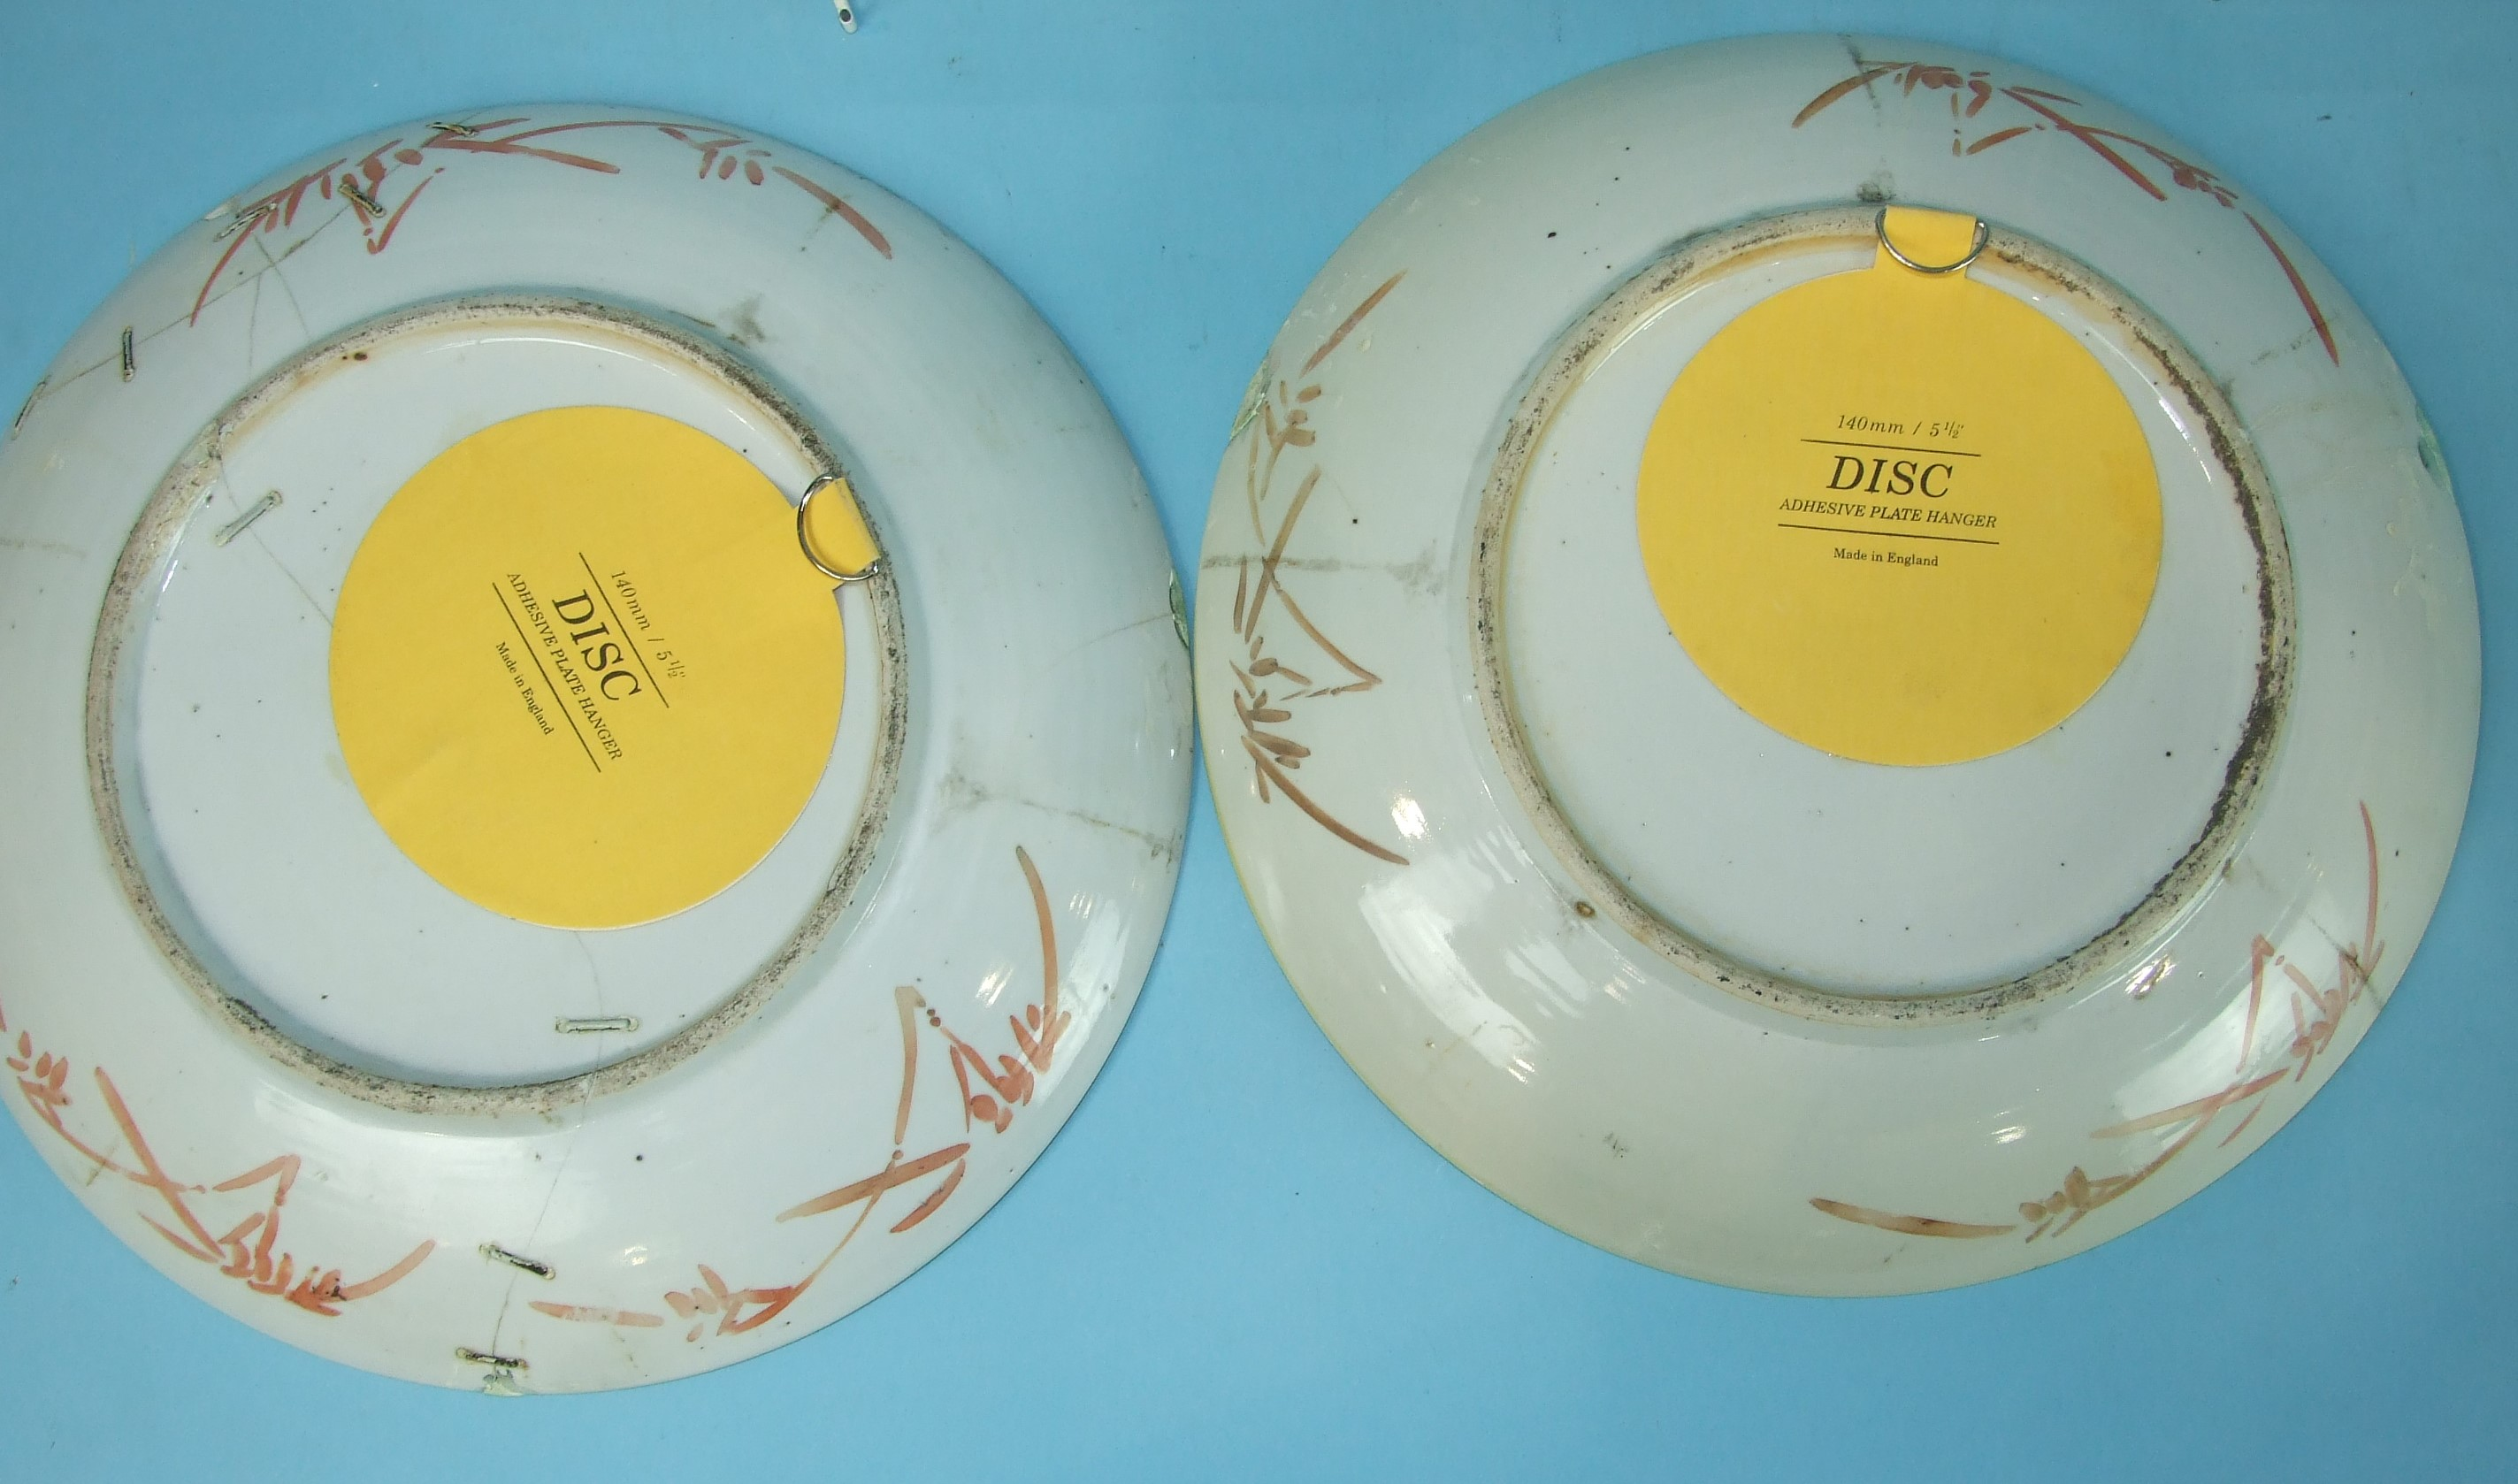 Lot 365 - A pair of large 19th century famille rose dishes decorated with musicians, 36.5cm diameter, (a/f).